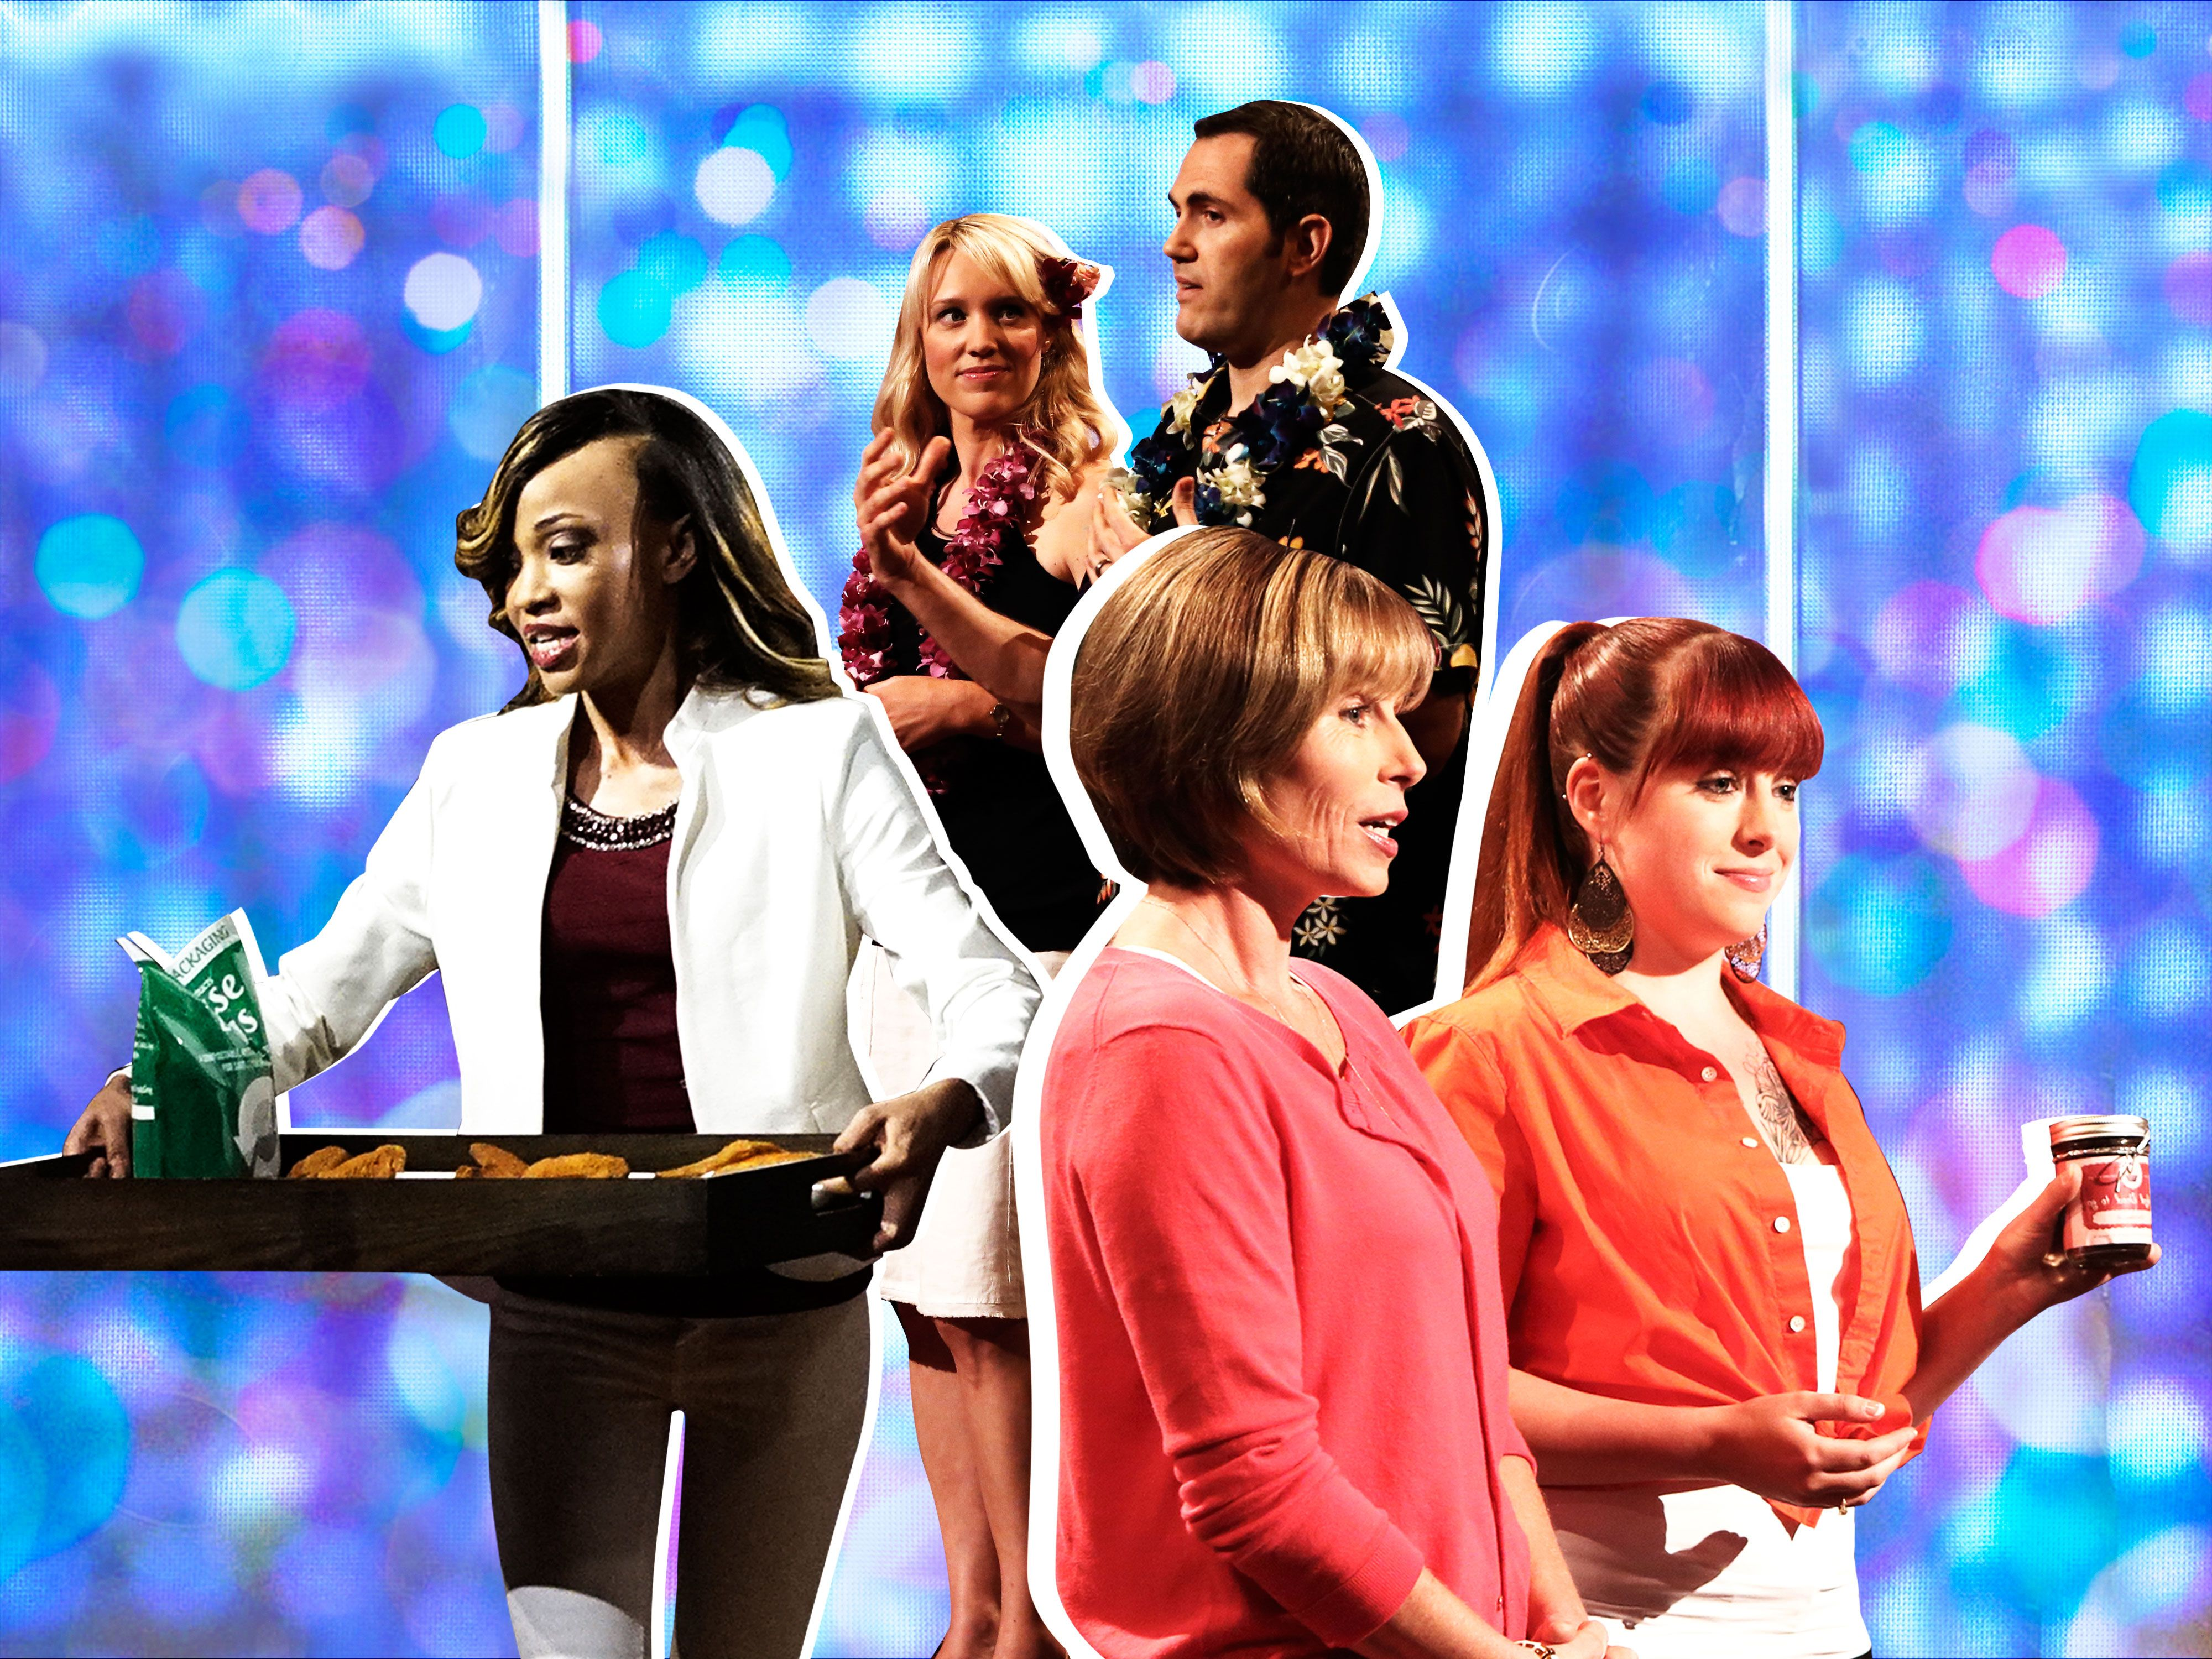 new product 51688 e0aaf Where Are Shark Tank Contestants Now? - What It's Like to Be on ...